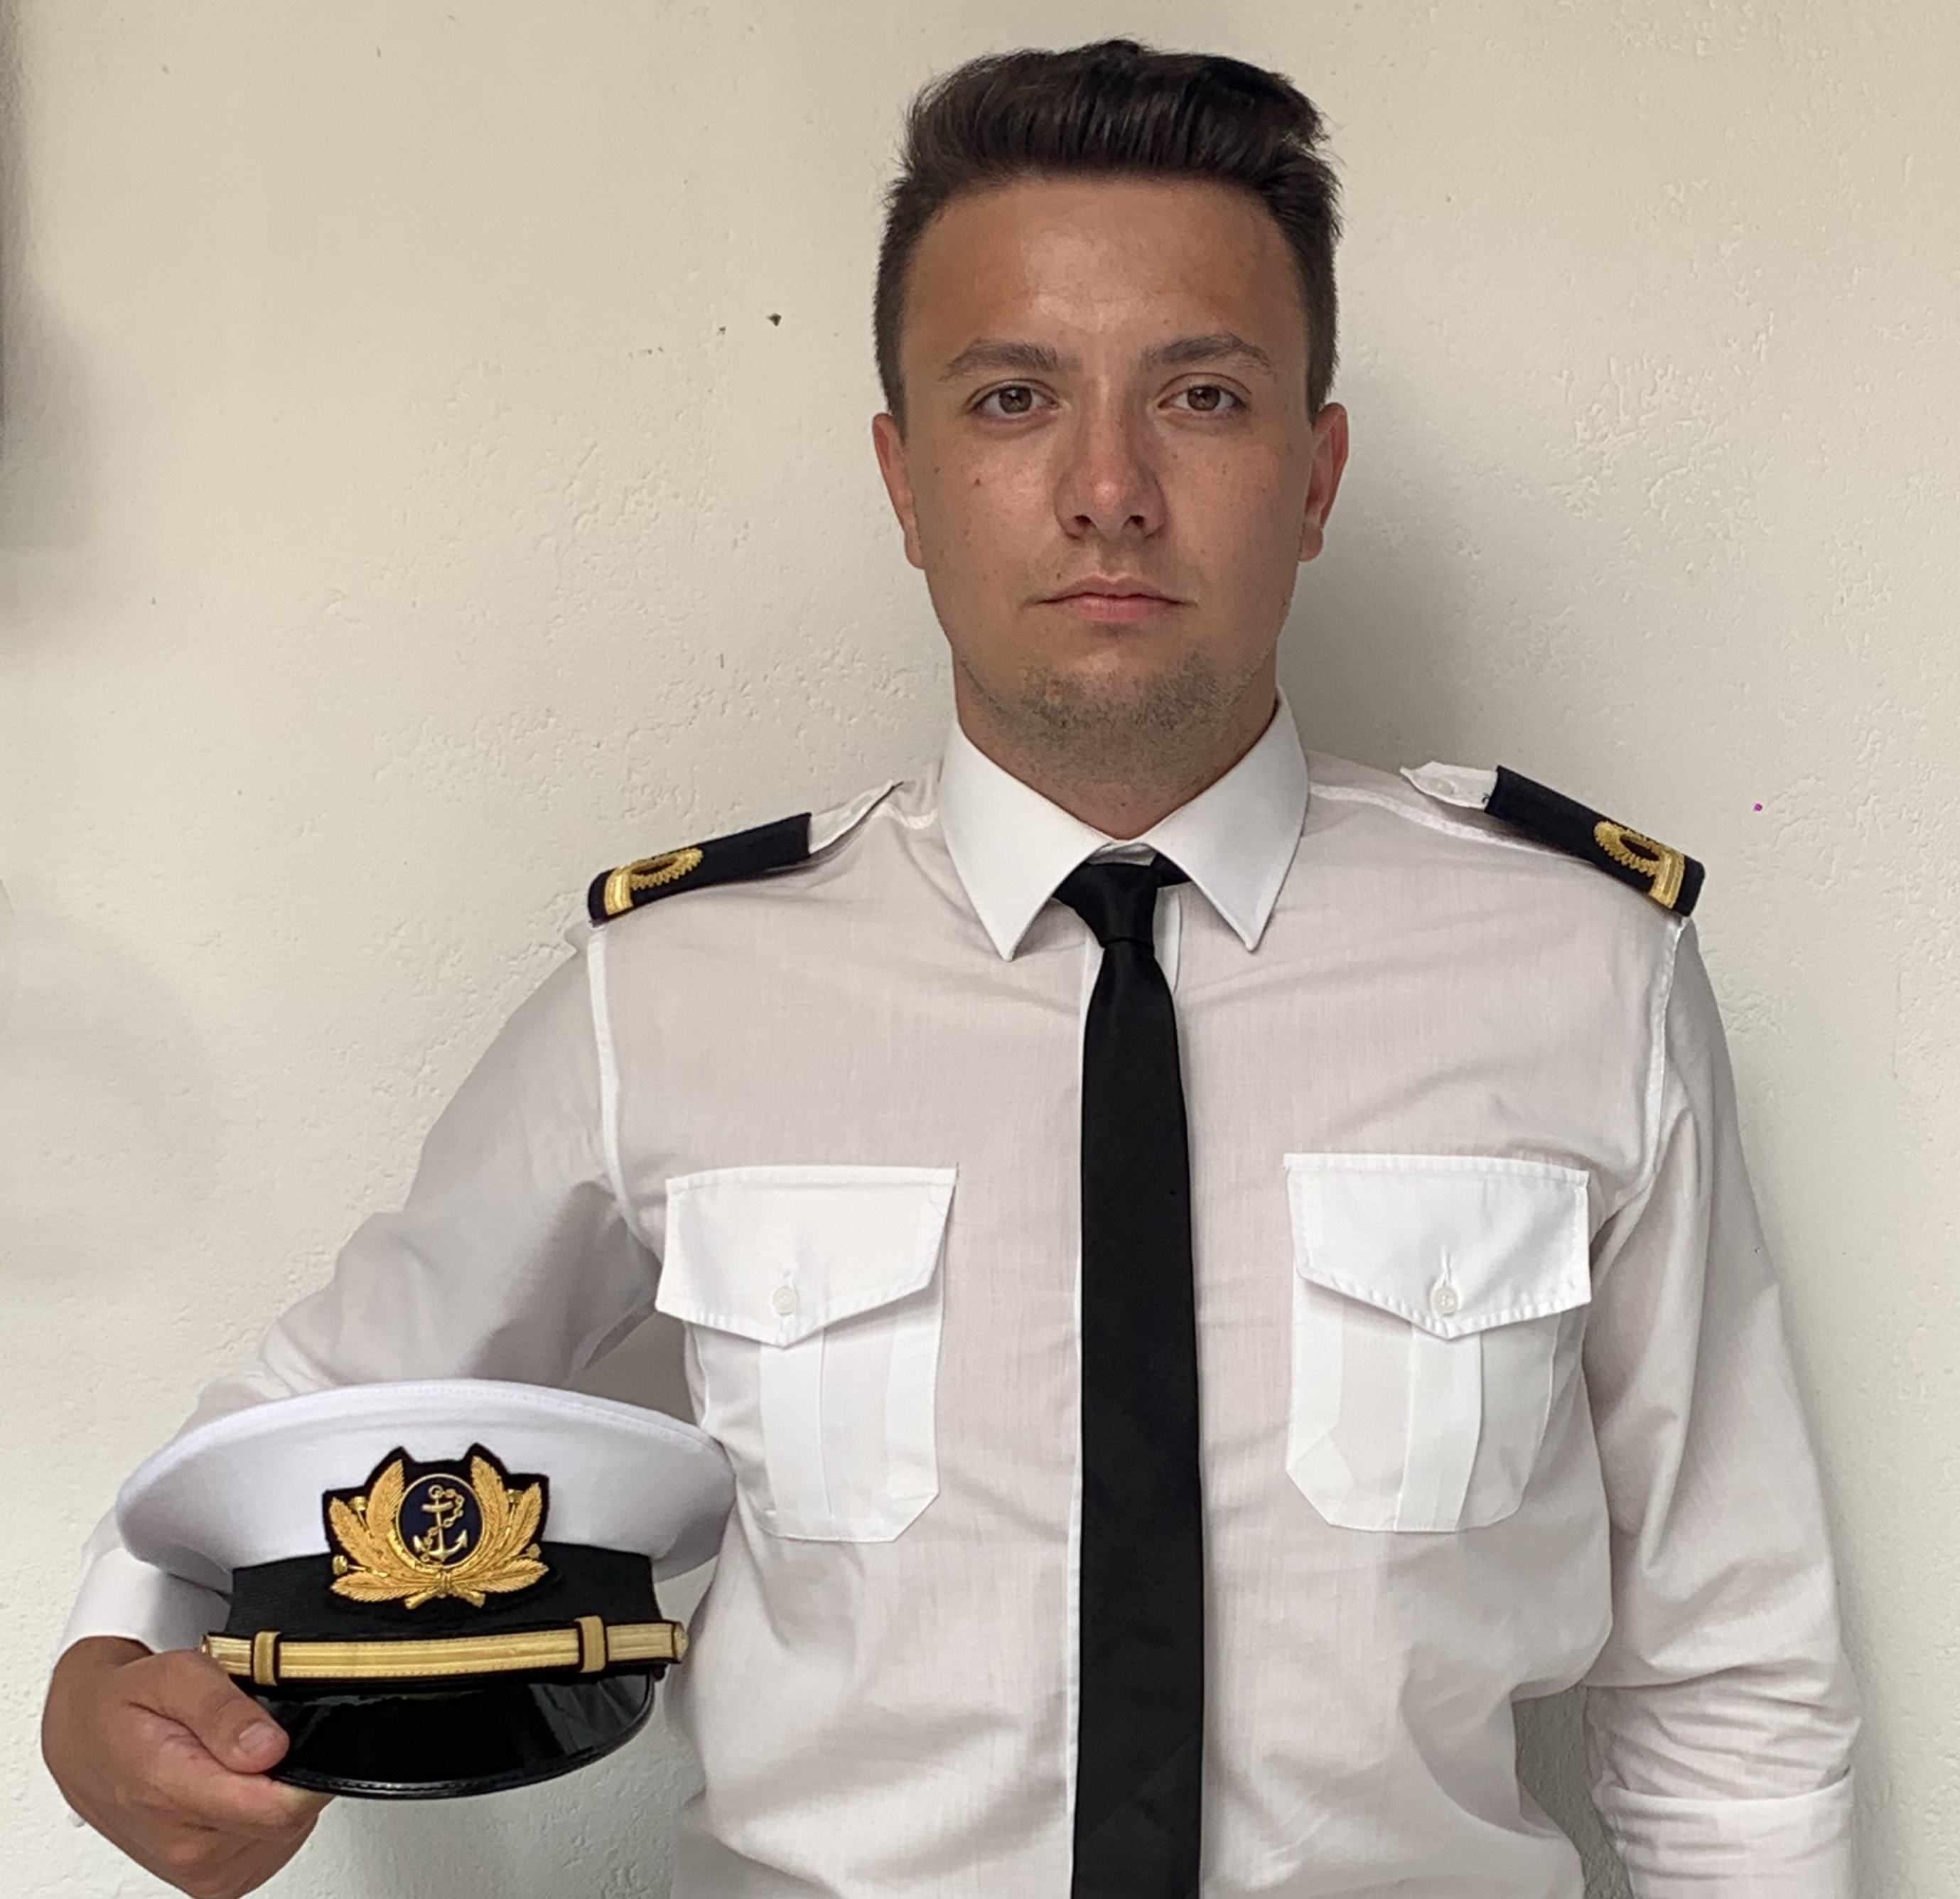 Massimiliano Bonfiglioli seafarer Third Officer Container Ship